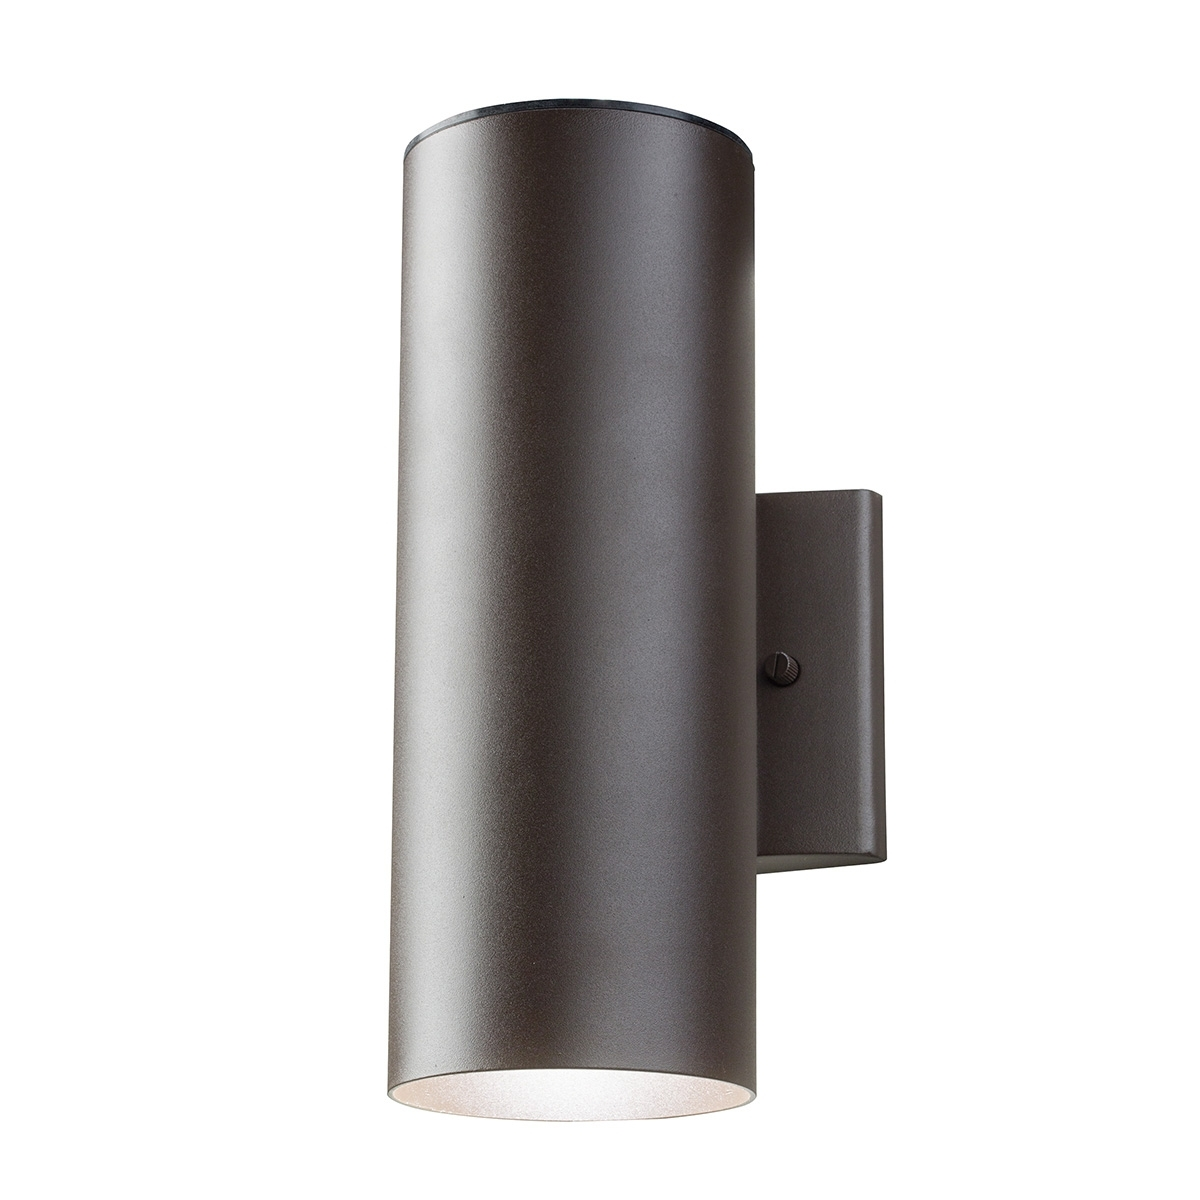 2019 Outdoor Wall Mounted Led Lighting With Outdoor Led Up/down Wall Sconcekichler (View 1 of 20)